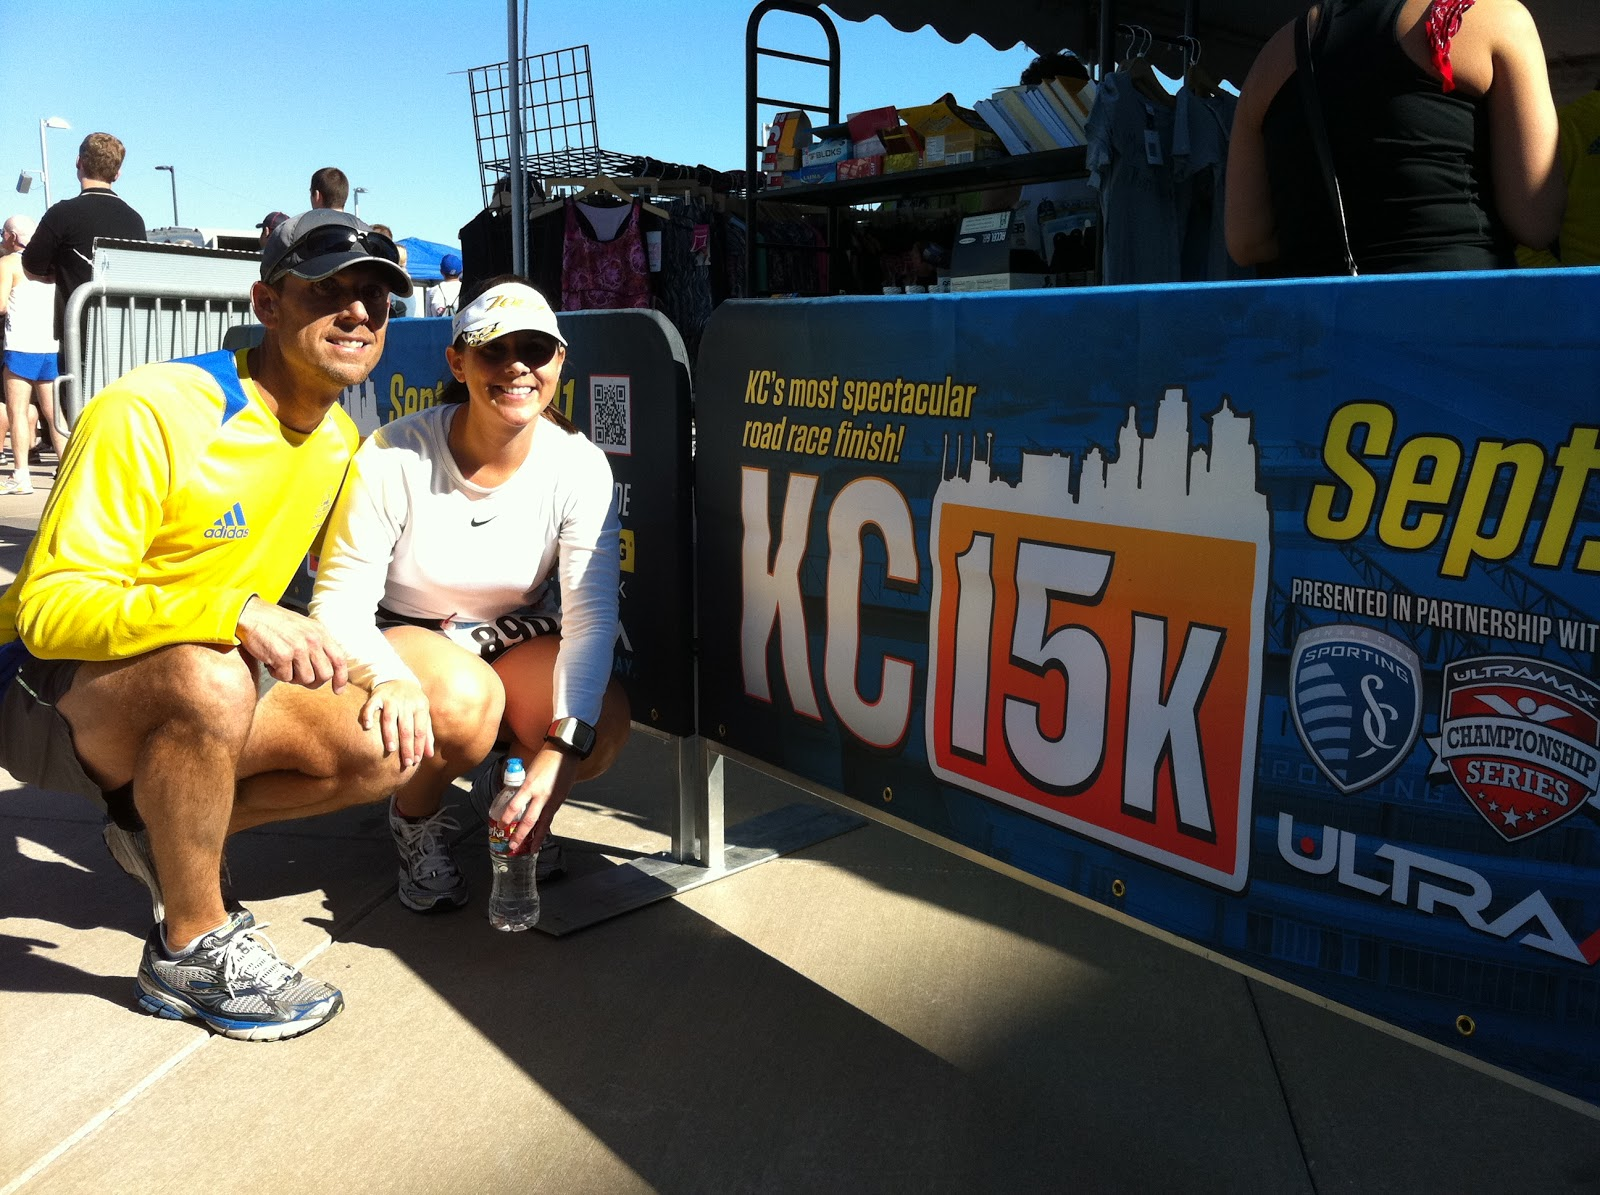 50 after 40: Cerner Kansas City 15K Race Report